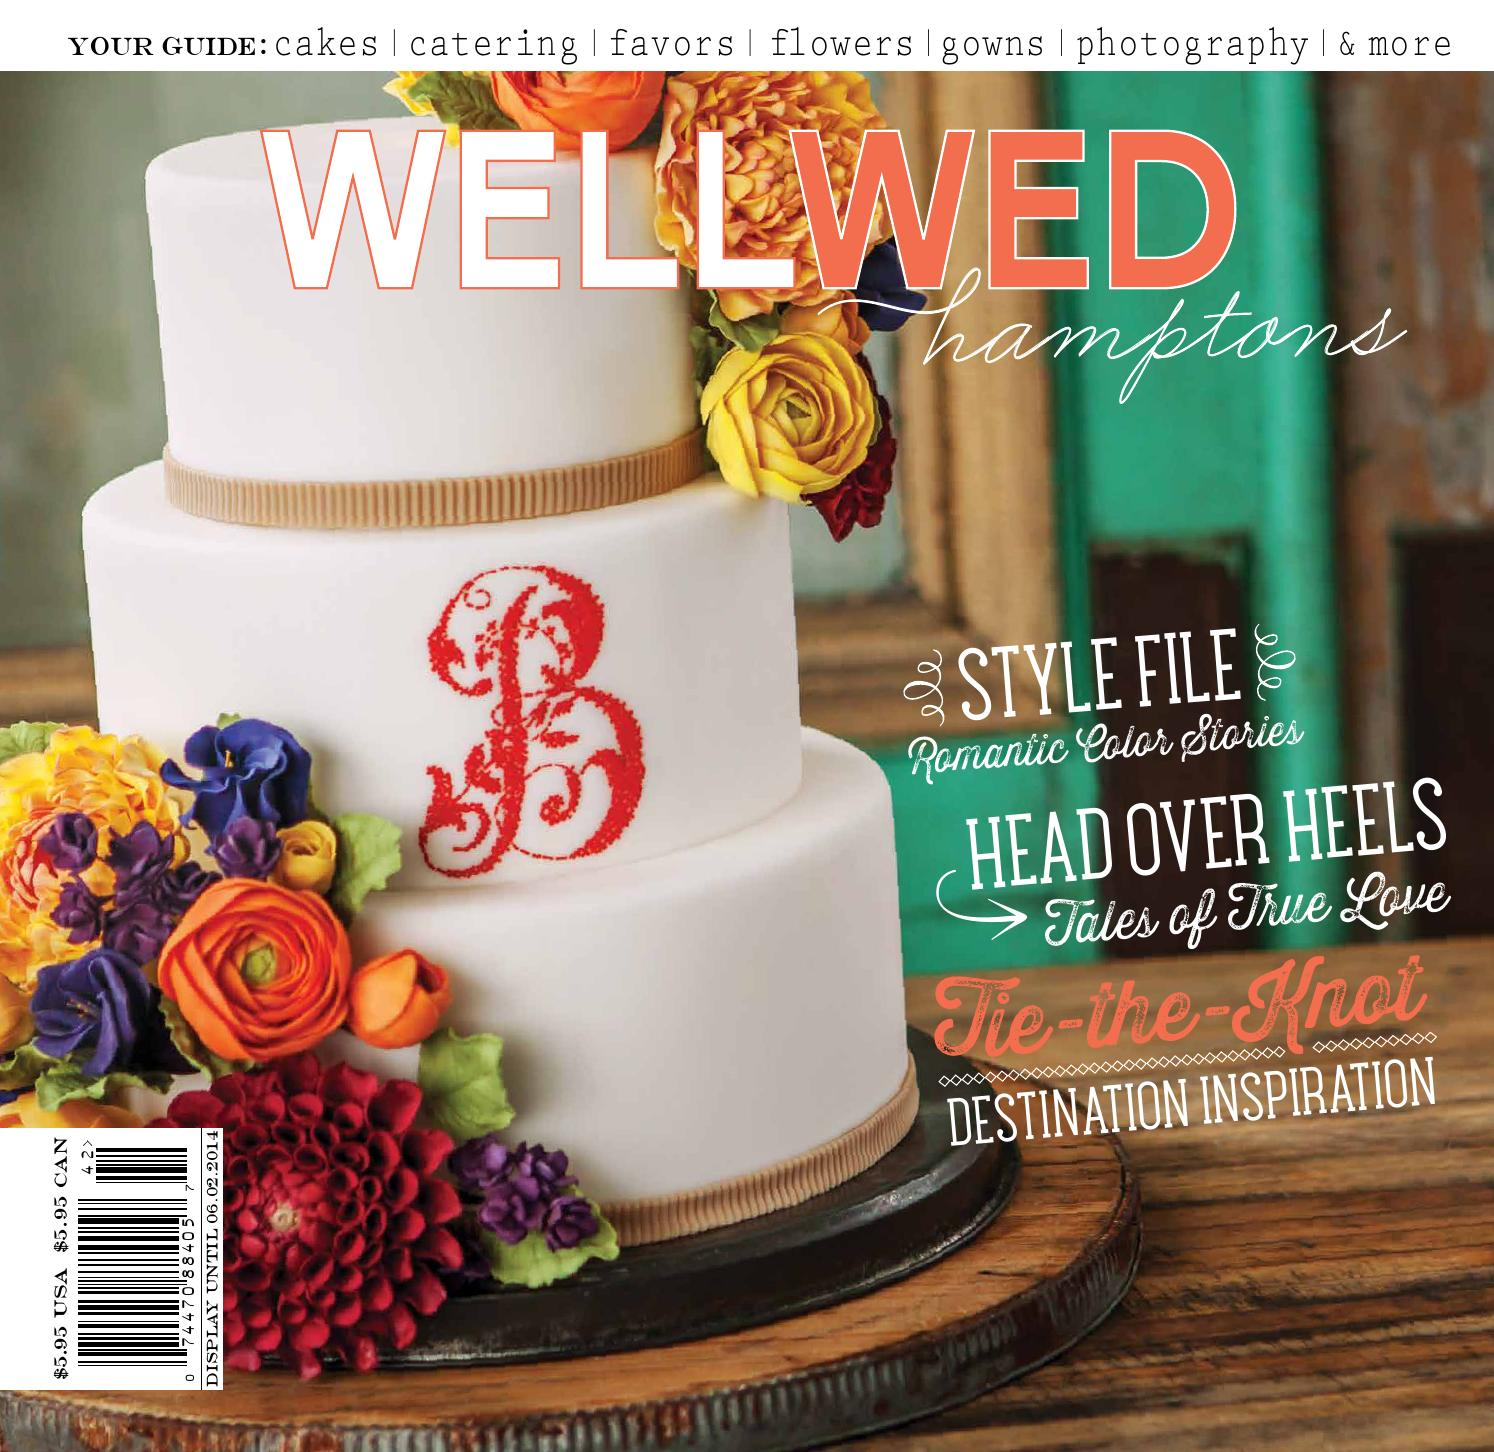 wellwed hamptons issue no 9 by vermont vows and wellwed